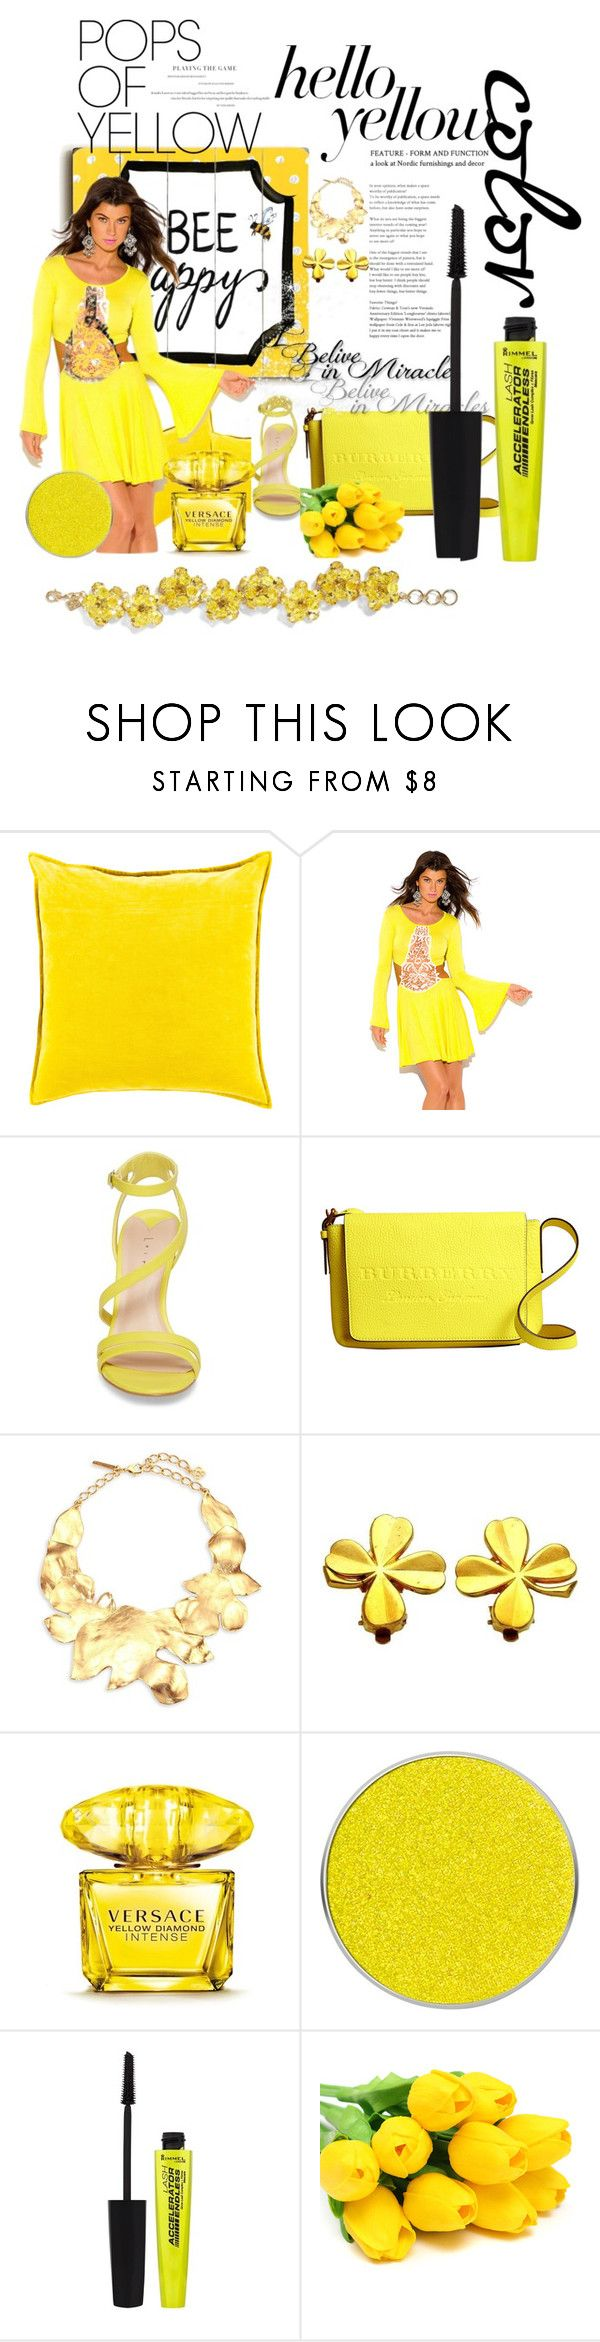 """yellow women..."" by suncenesa ❤ liked on Polyvore featuring One Bella Casa, Surya, Leith, Burberry, Oscar de la Renta, Chanel, Versace, Suva Beauty, Rimmel and PopsOfYellow"